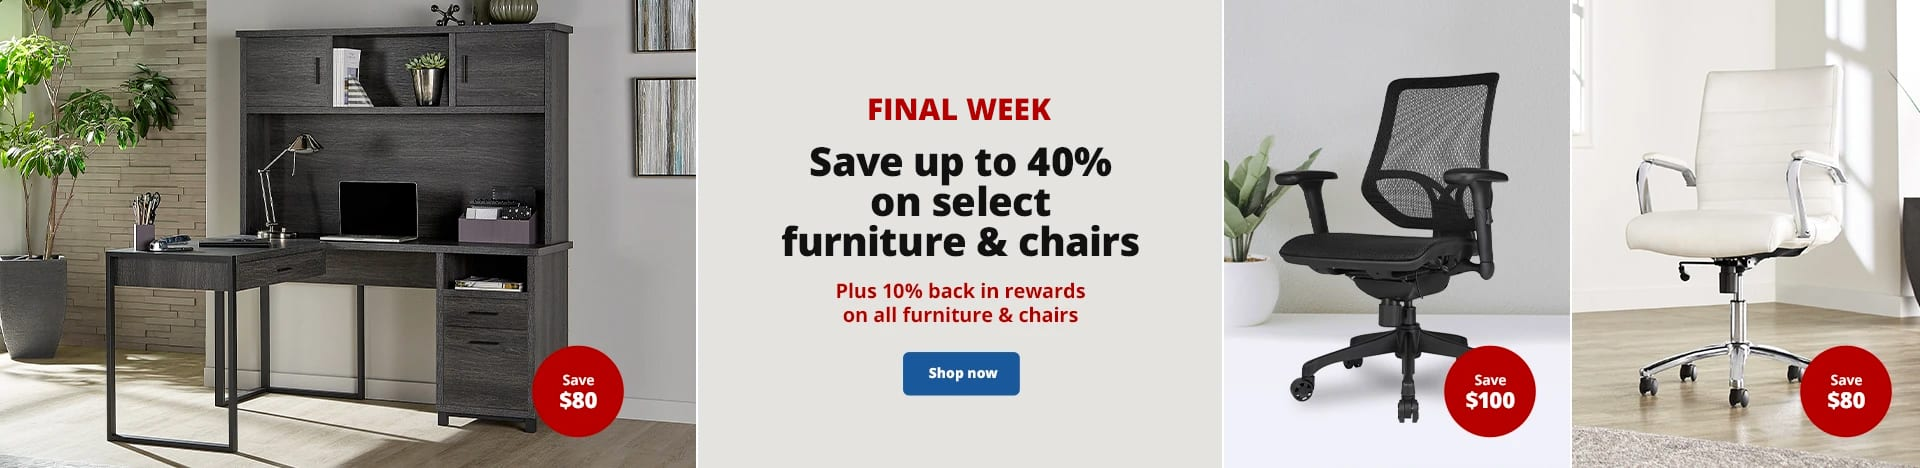 Final Week. Save up to 40% on select furniture & chairs. Plus 10% back in rewards on all furniture & chairs